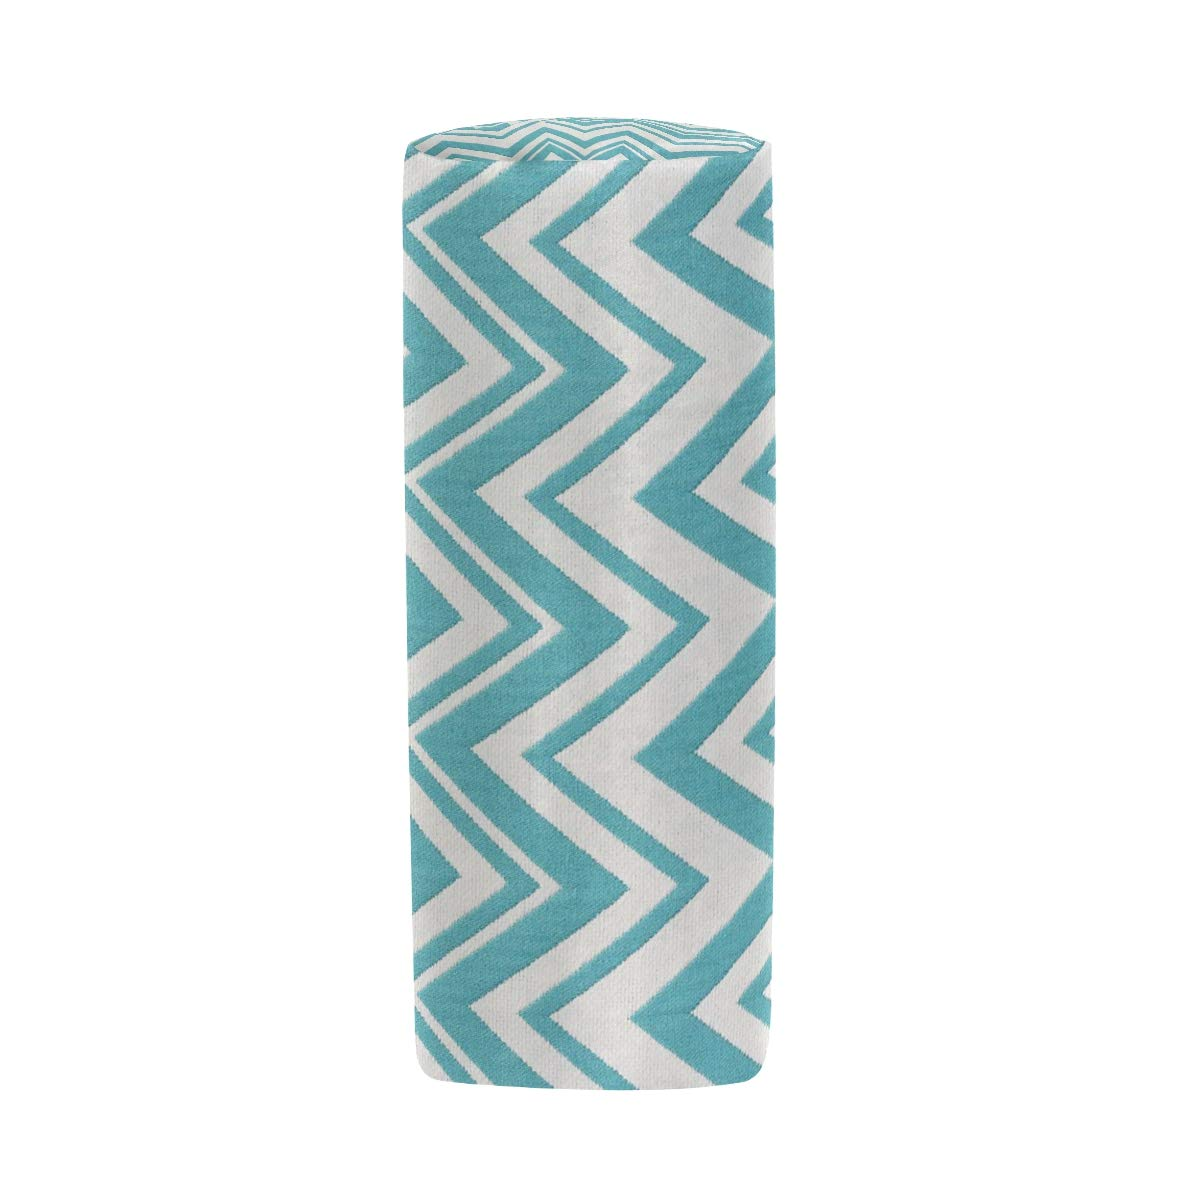 Pencil Case Teal and White Zig Zag School Pen Pouch Office Zippered Pencil Cases Holder Women Makeup Bag by KMAND (Image #3)